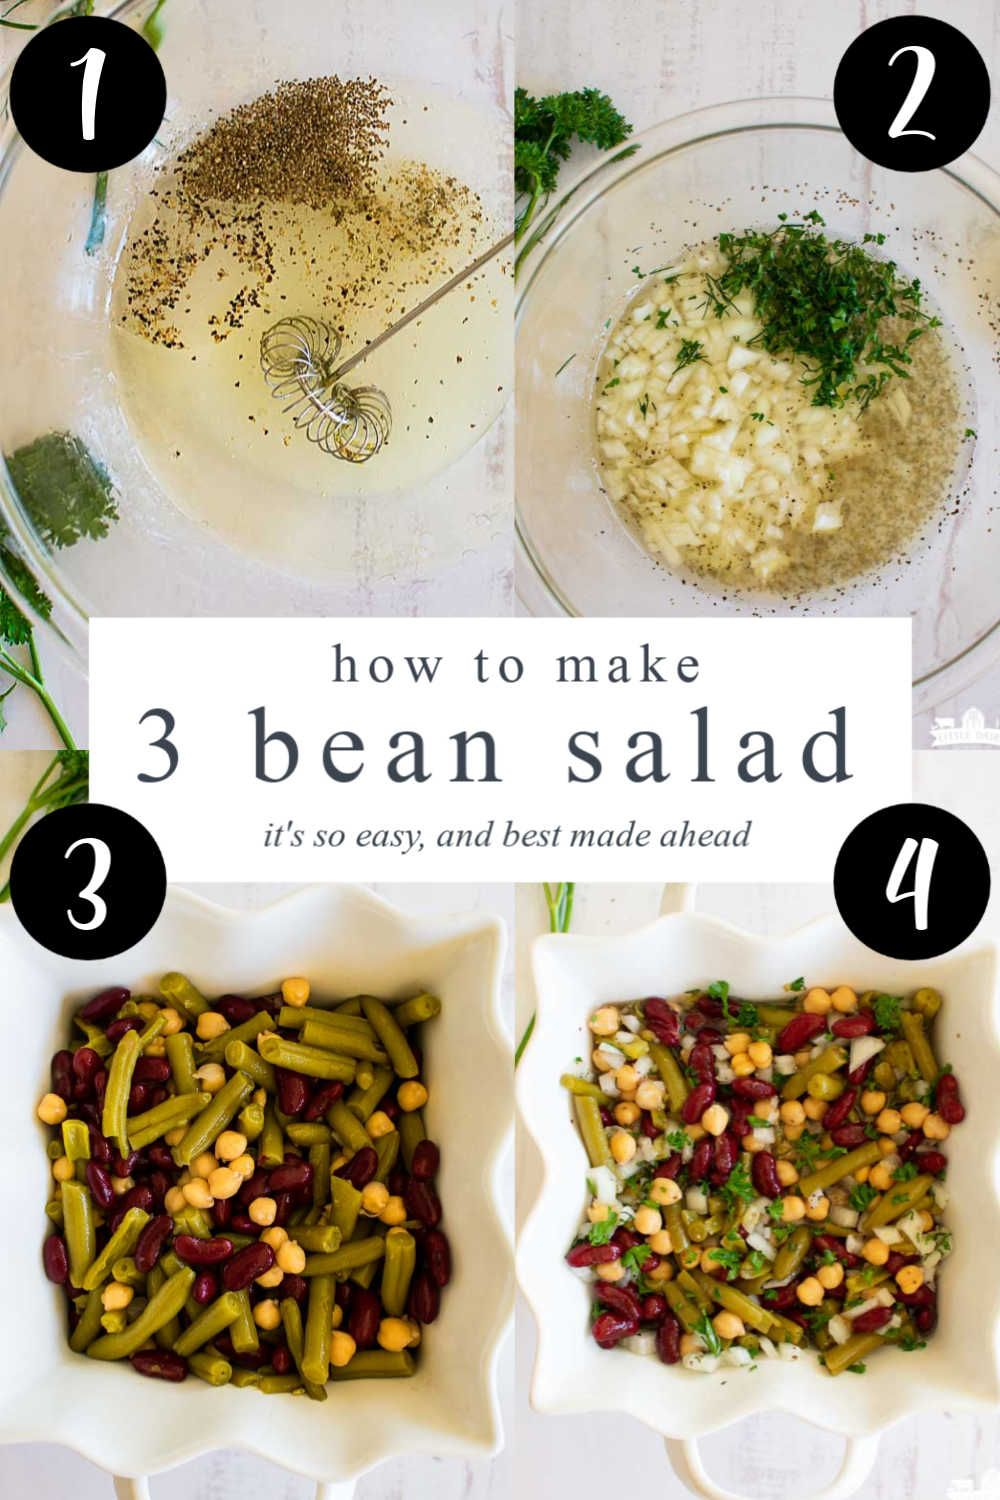 Three Bean Salad Recipe Is The Classic Old Fashioned 3 Bean Salad Recipe You Remember From Your Gra In 2020 Bean Salad Recipes Easy Bean Salad Recipes Three Bean Salad